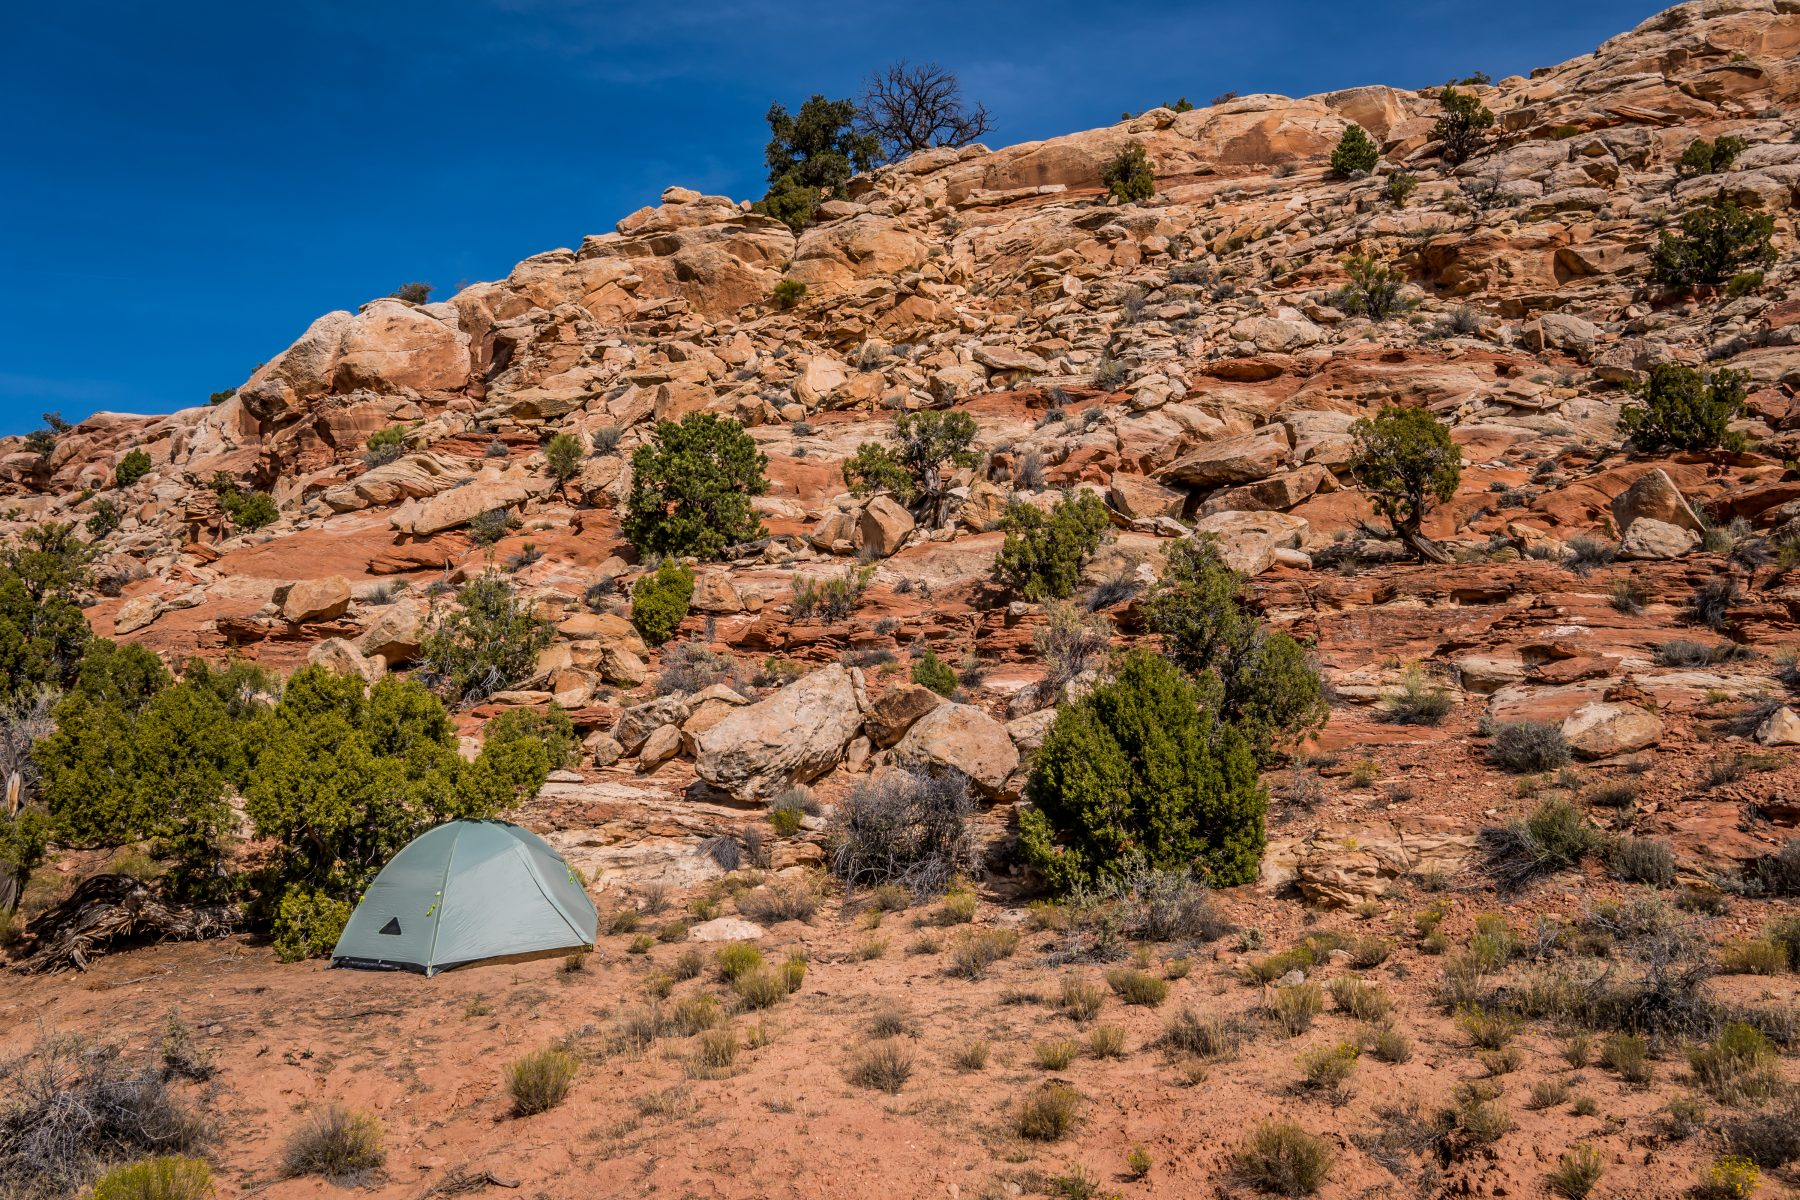 My beautiful campsite on BLM land just 20 feet outside of Arches National Park.